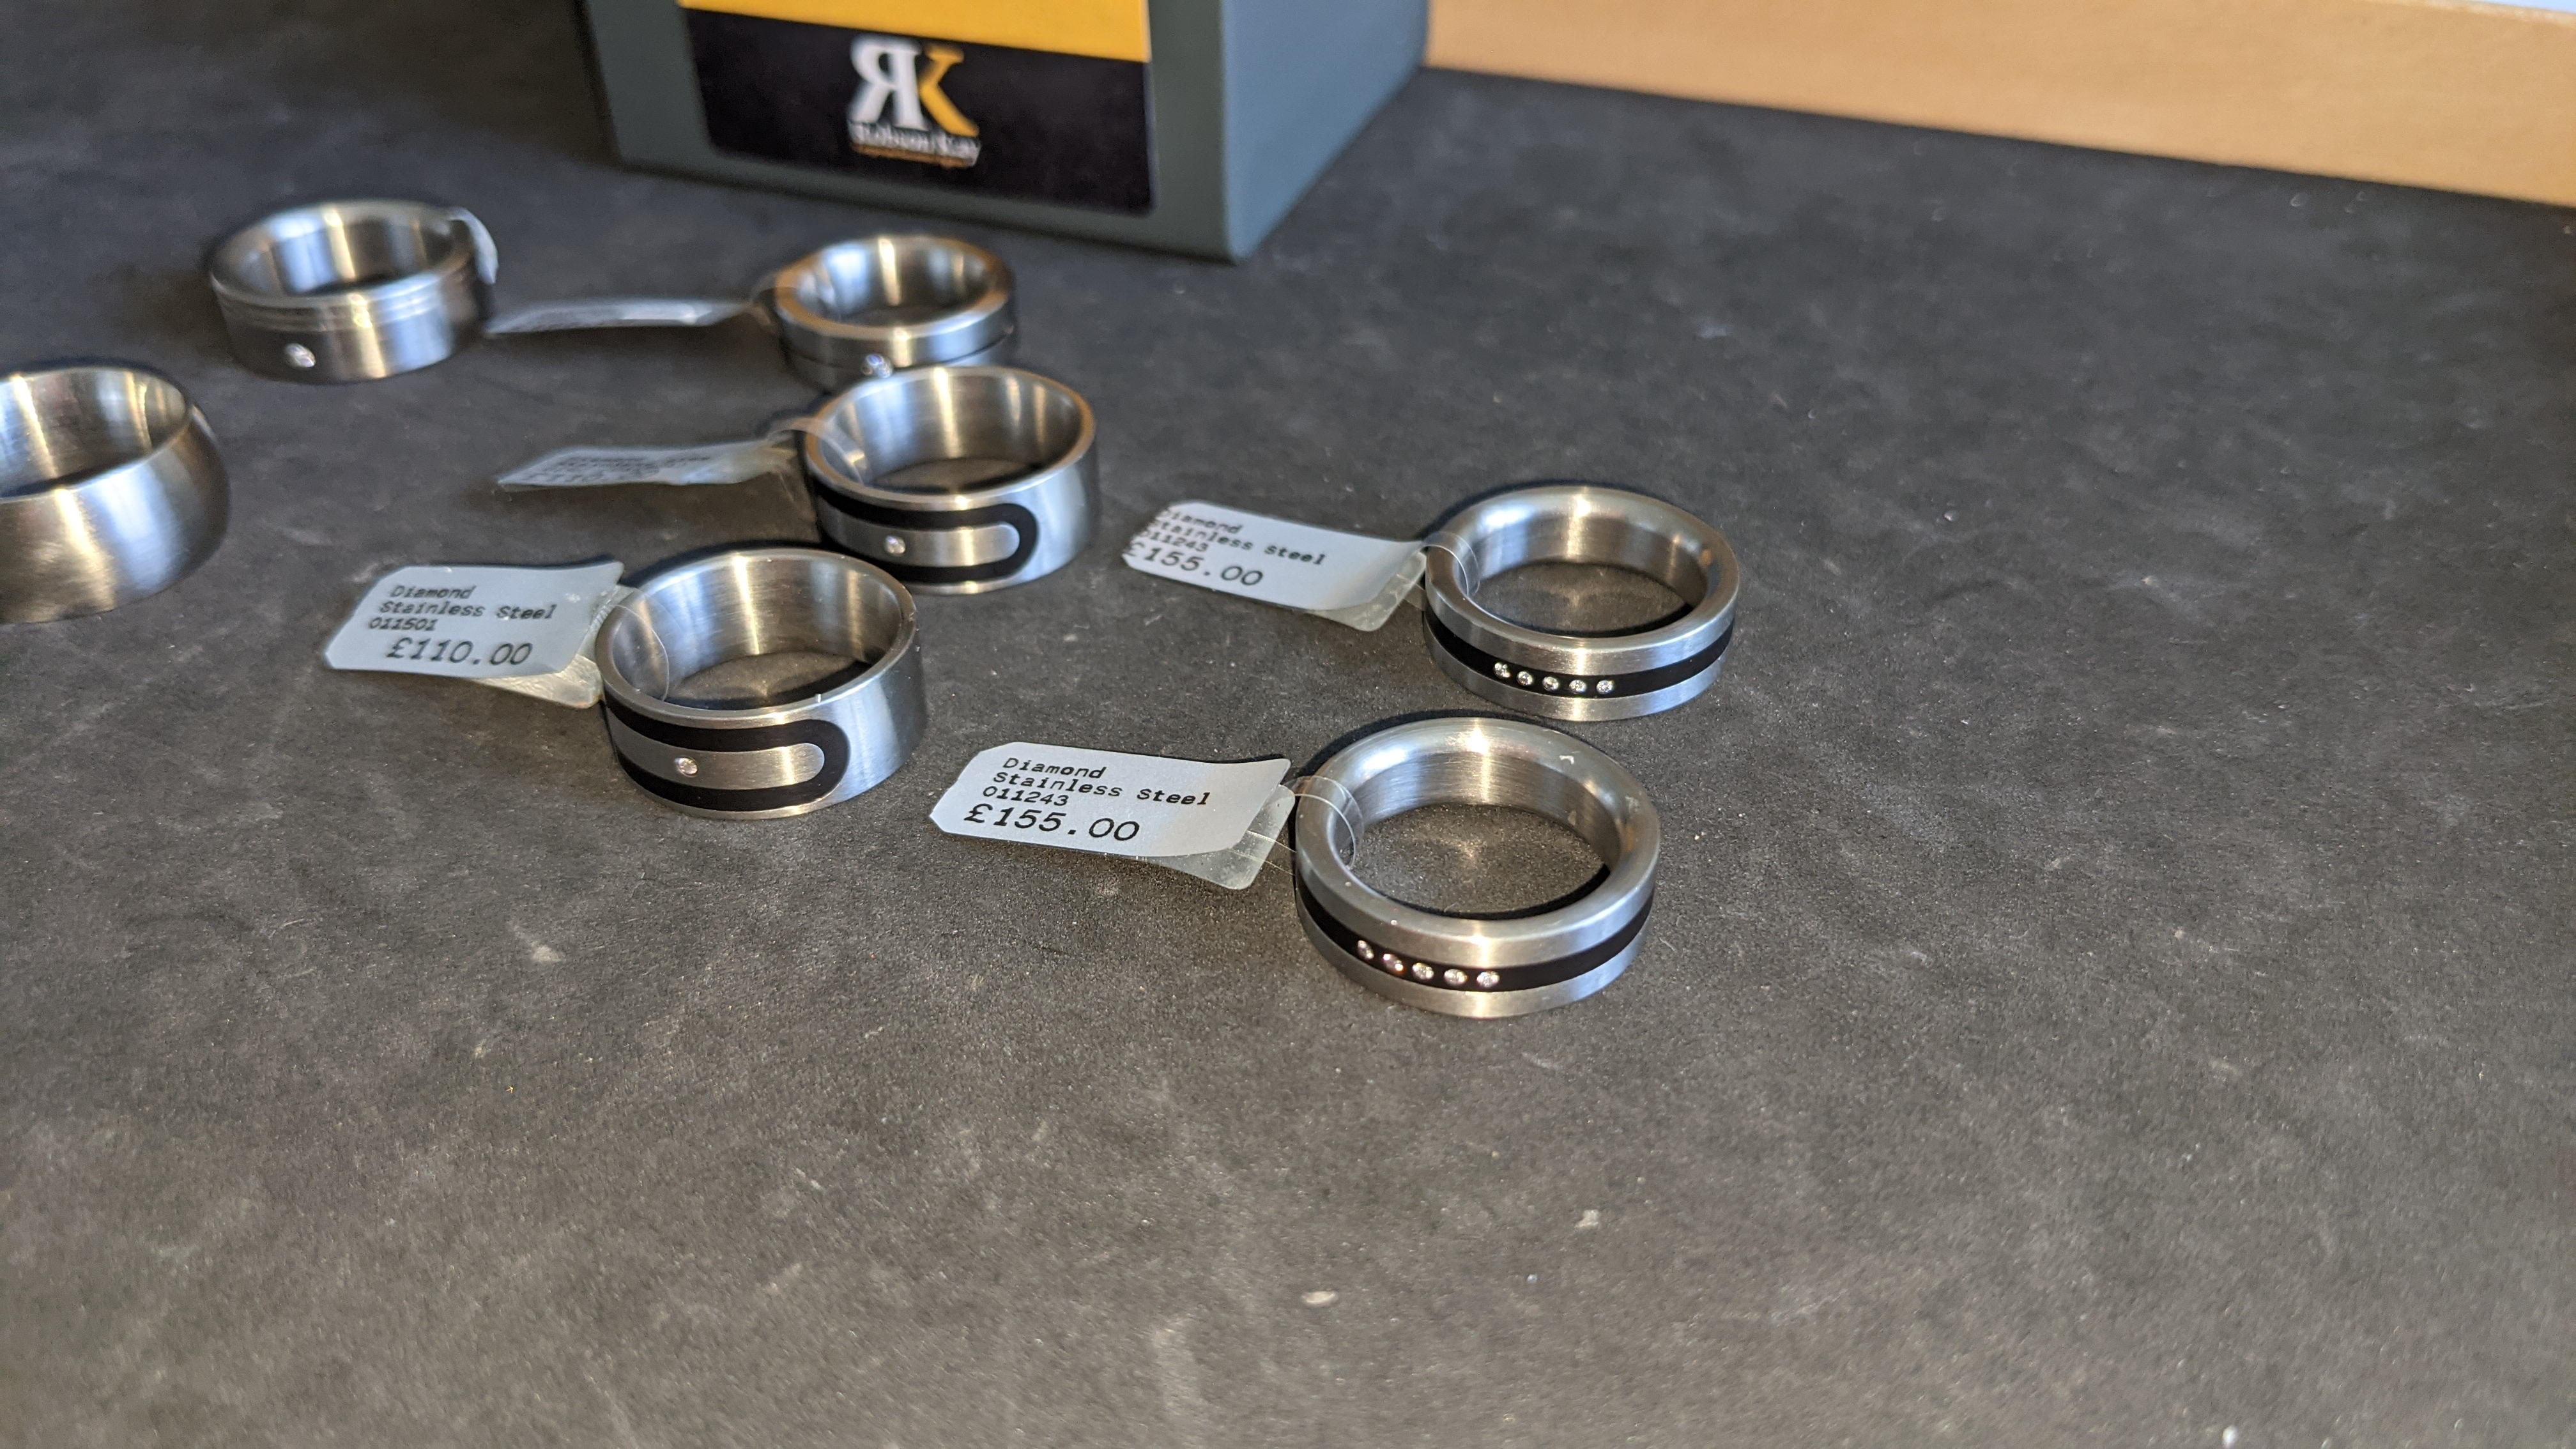 7 off assorted stainless steel & diamond rings. RRPs from £110 - £170. Total RRP £1,028 - Image 6 of 12